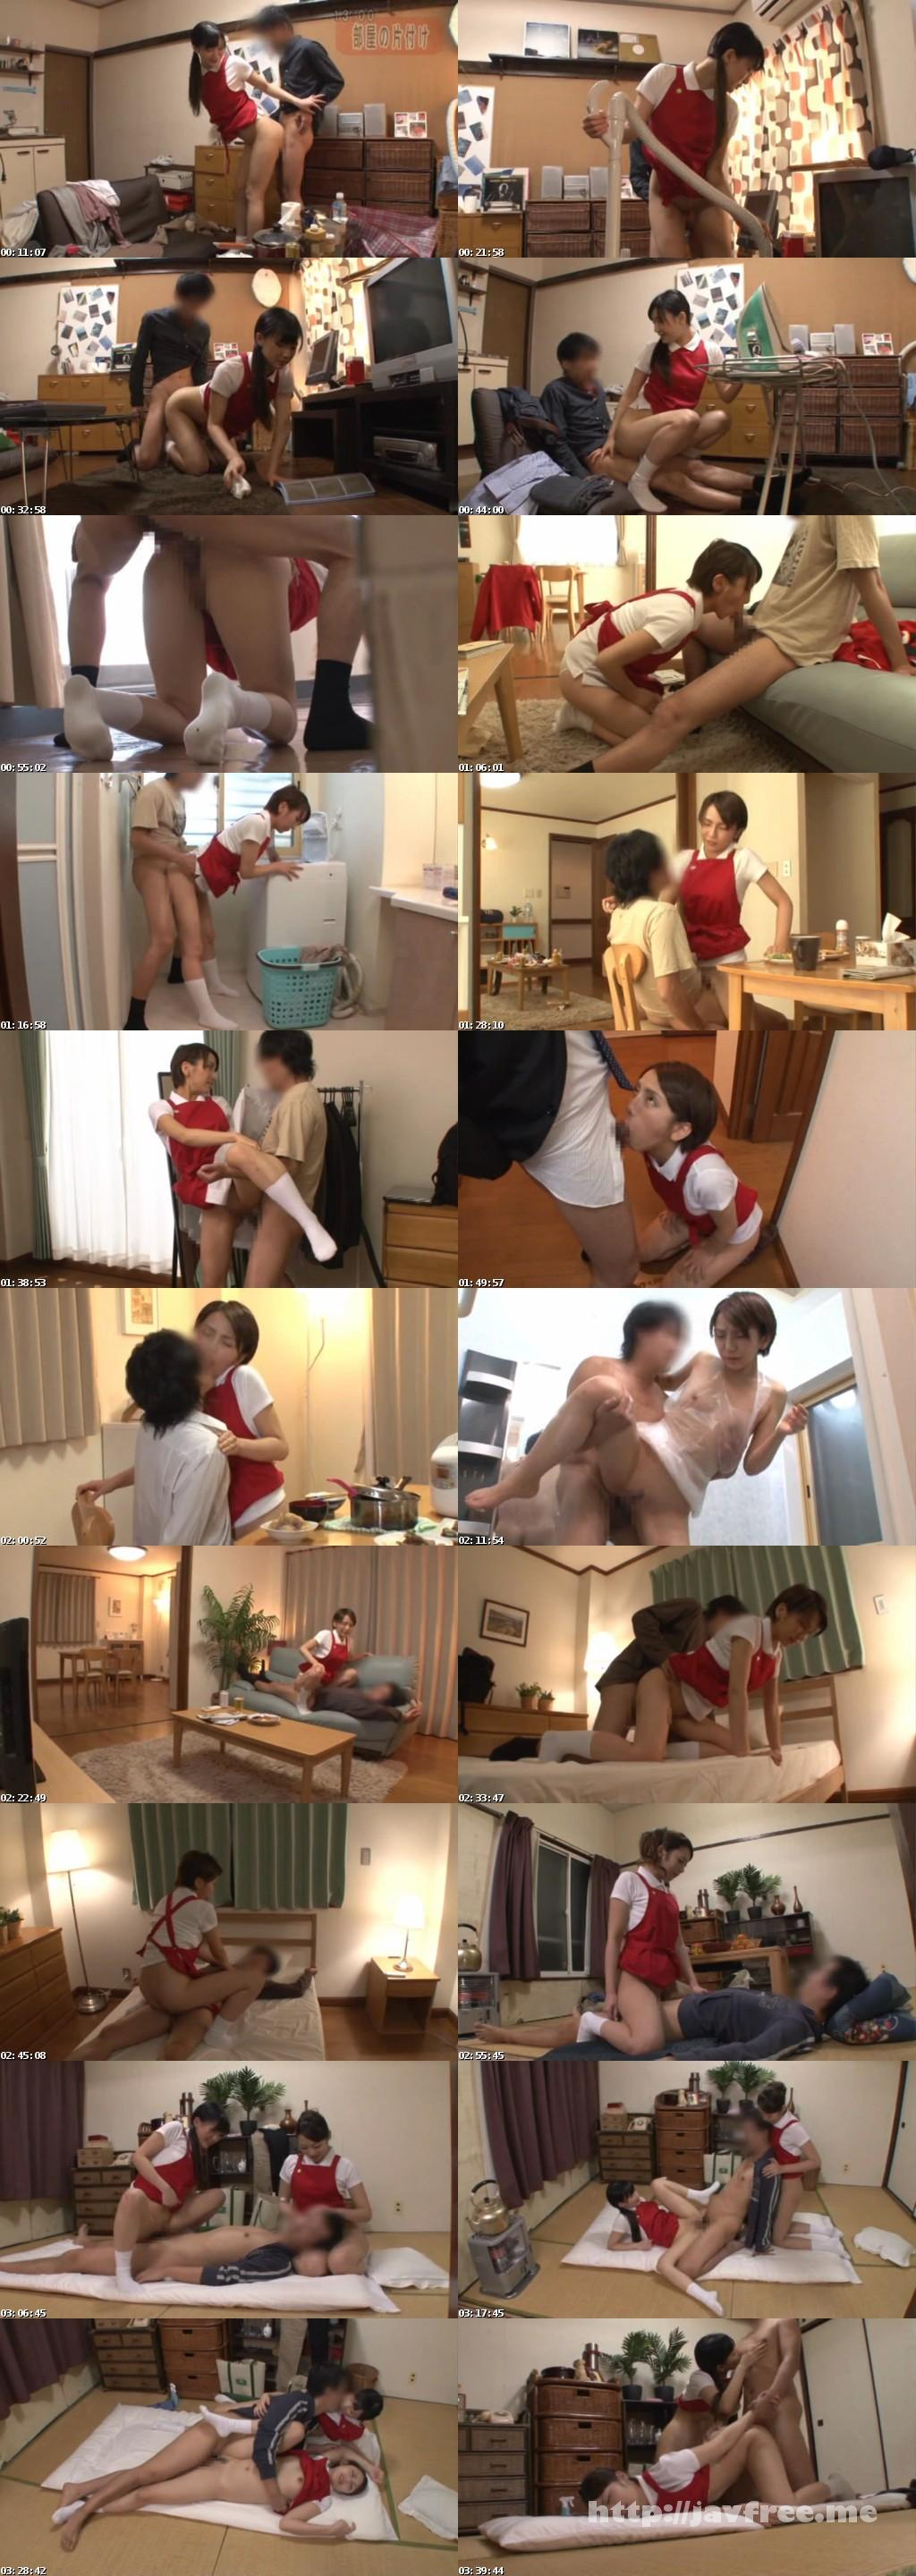 [SDDE-343] 「常に性交」 家事代行サービス - image SDDE-343 on https://javfree.me